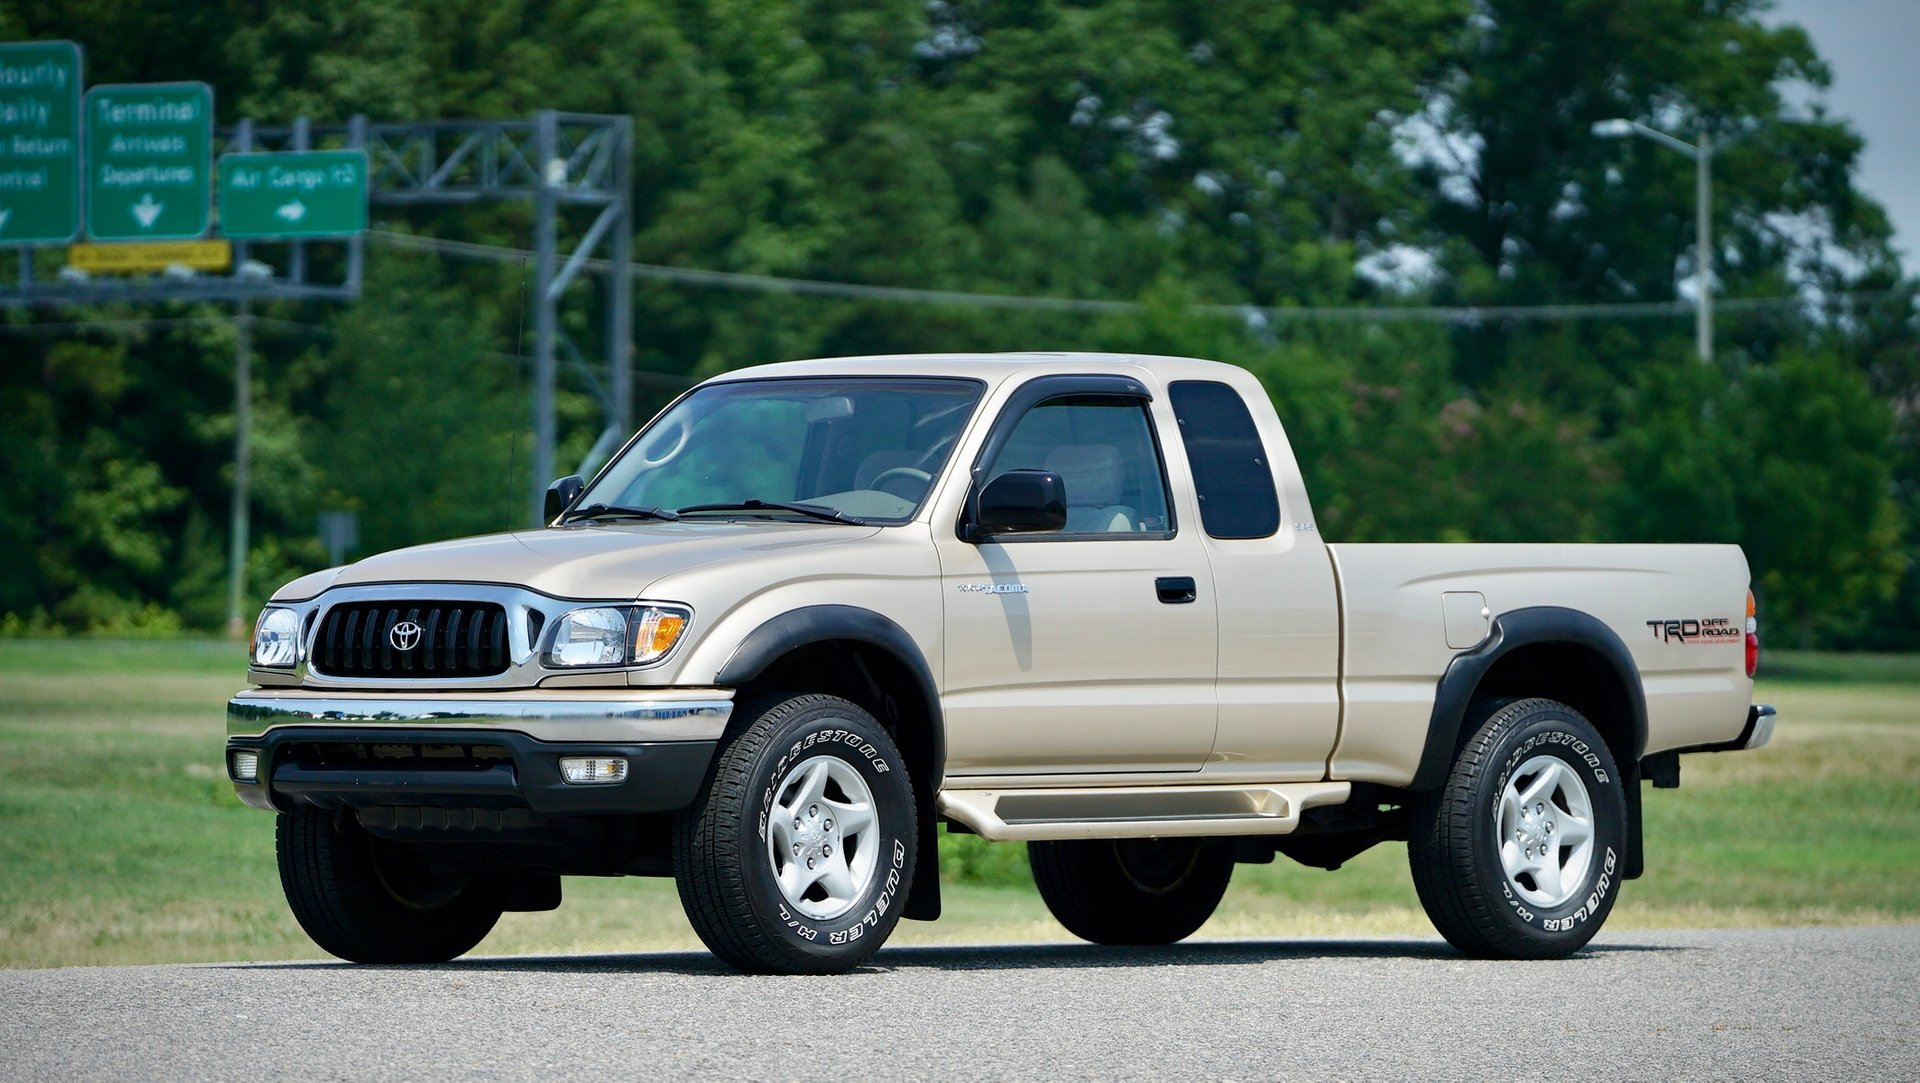 2002 toyota tacoma xtracab 4x4 trd off road